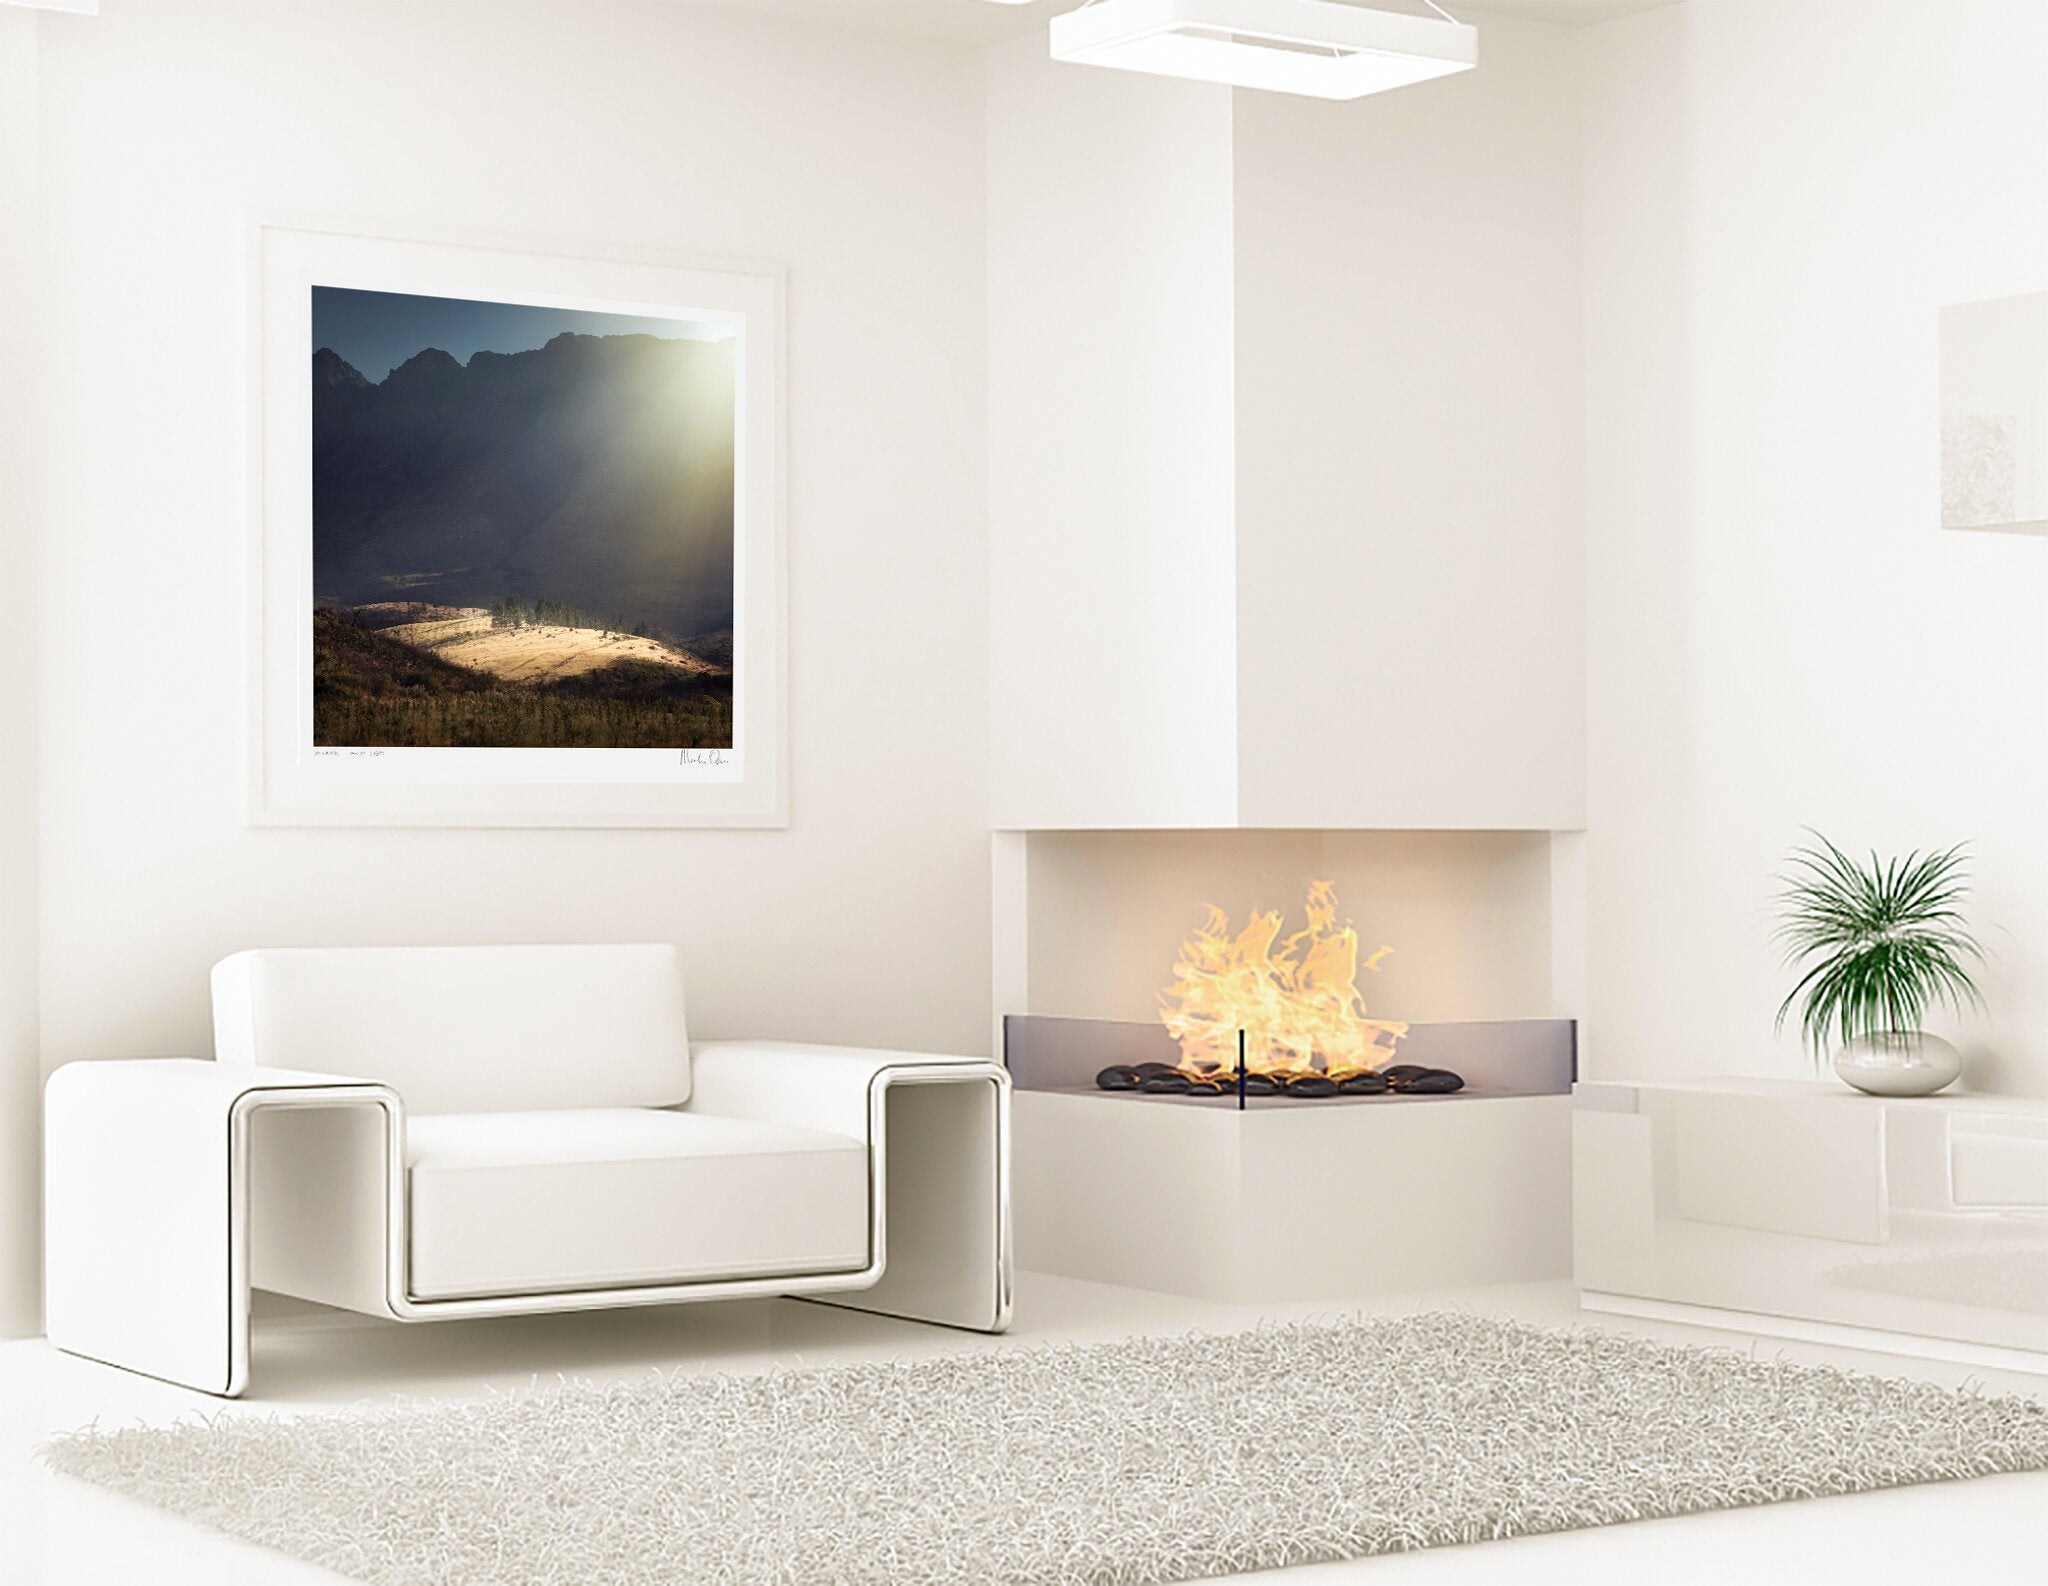 Landscape photograph of a mountain in a beautiful modern interior.